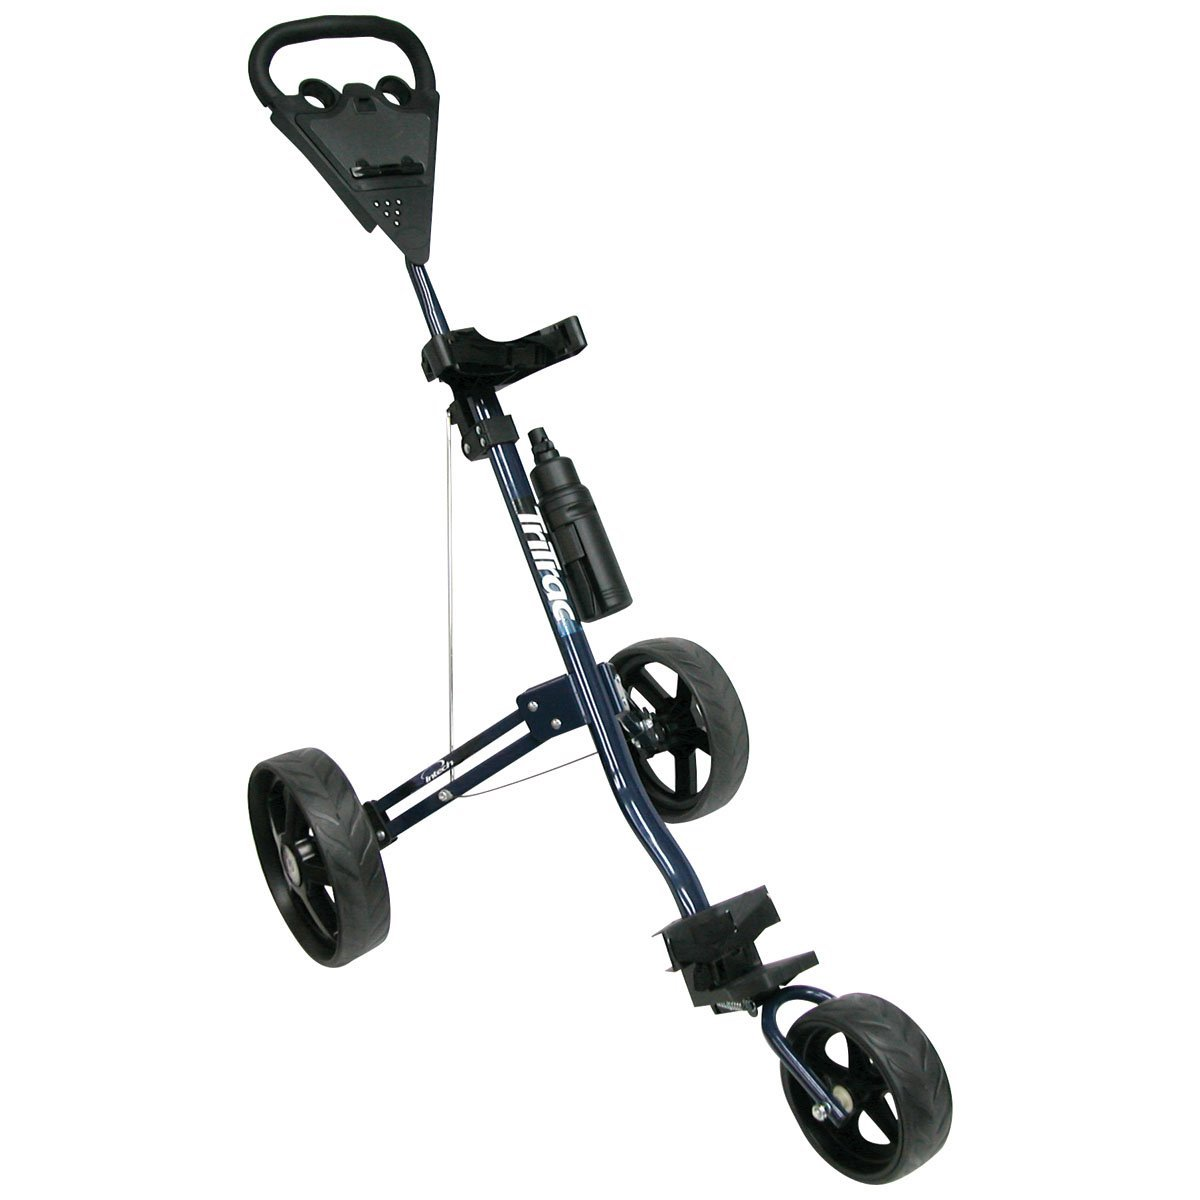 Intech Golf Carts / Trolleys